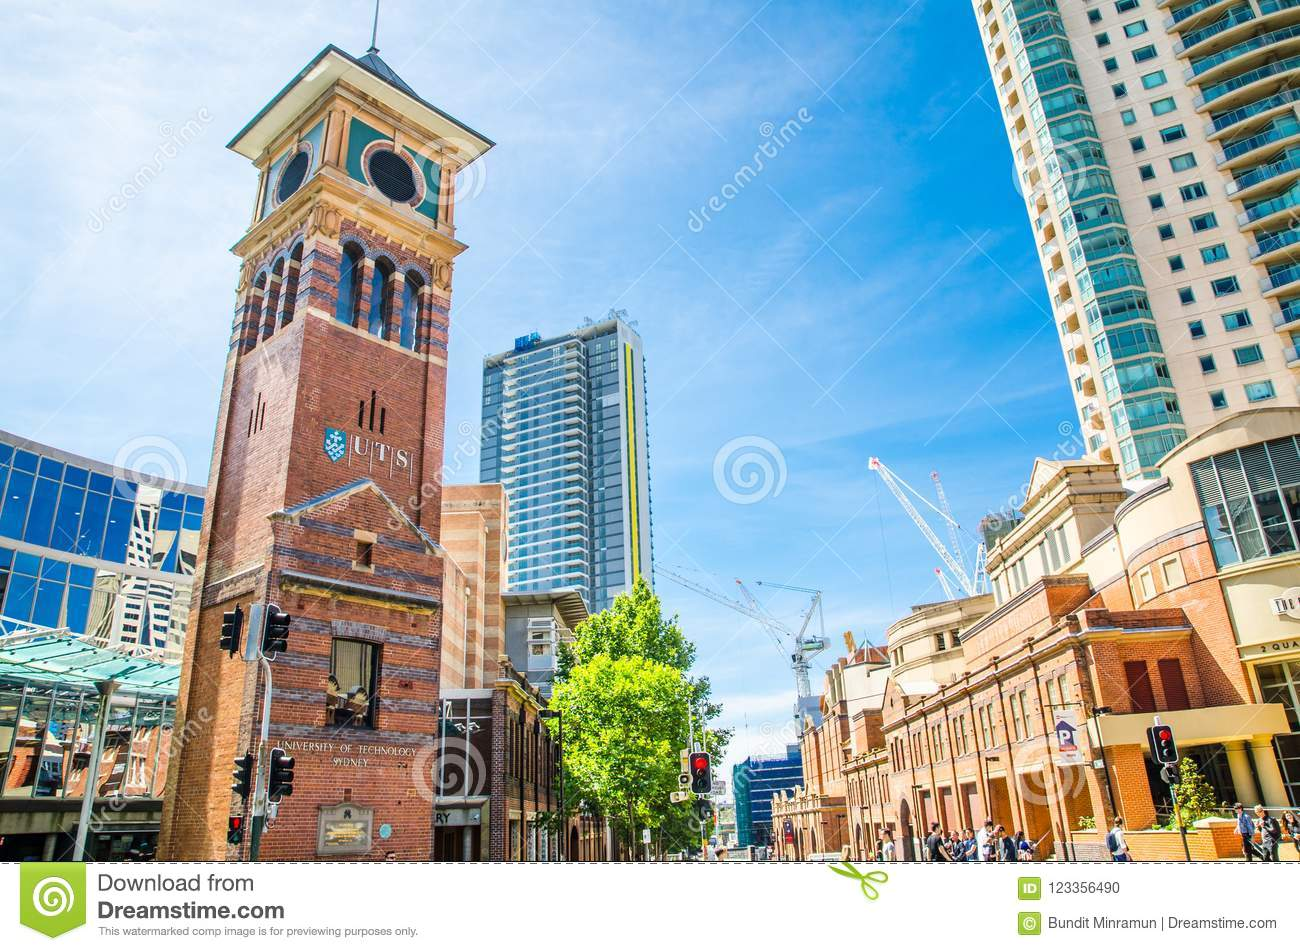 The University of Technology, Sydney UTS and library with iconic clock tower is located in Haymarket, Chinatown.